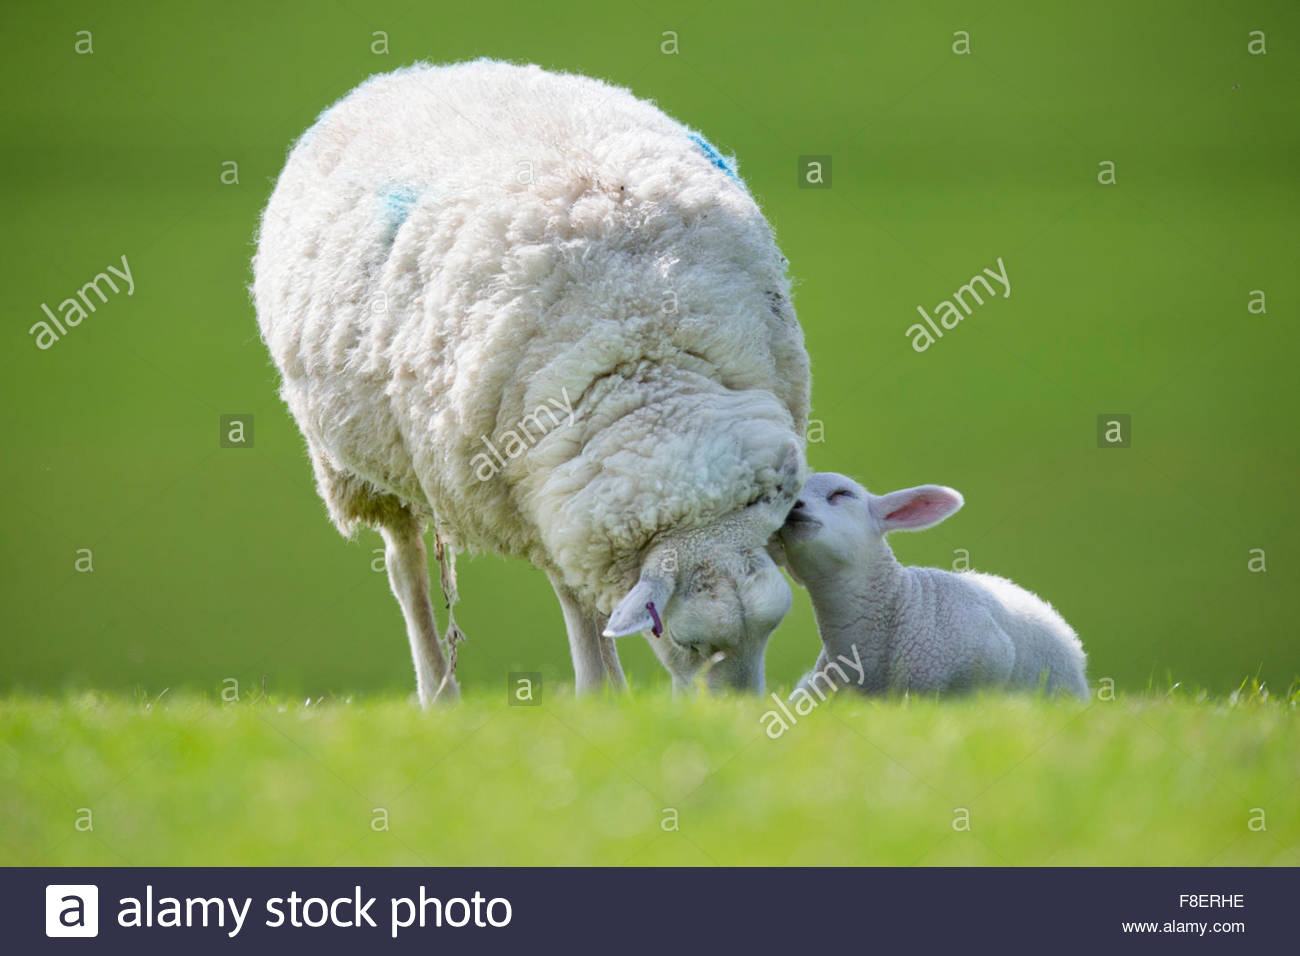 Affectionate lamb and grazing sheep in green spring field - Stock Image